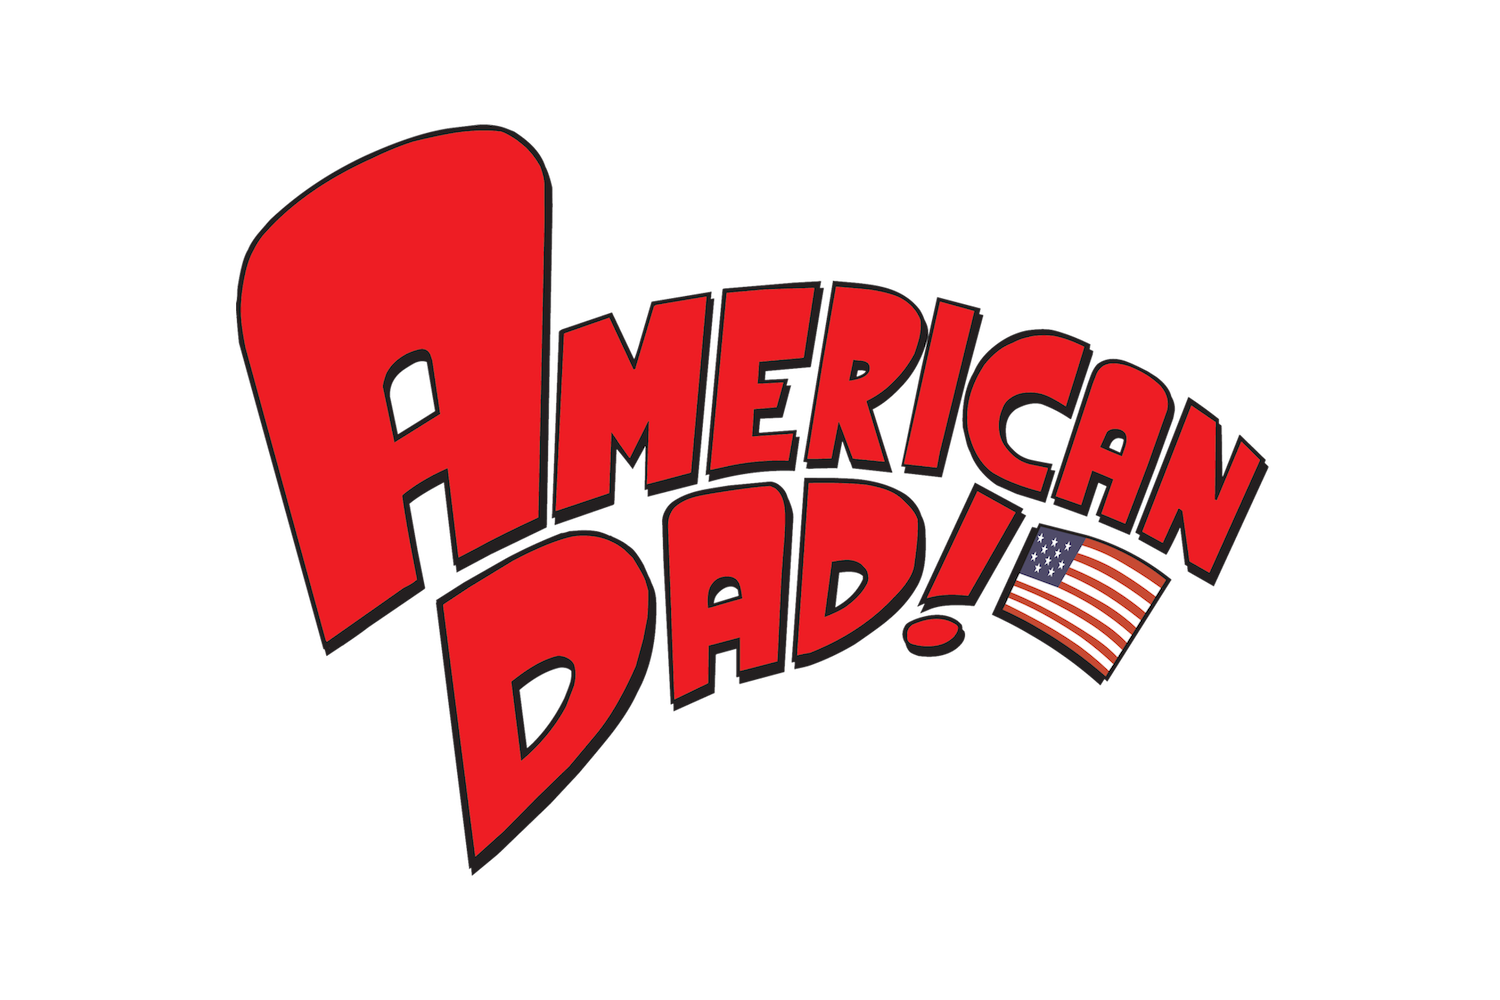 American Dad! airs Mondays at 10:00pm ET/PT on TBS